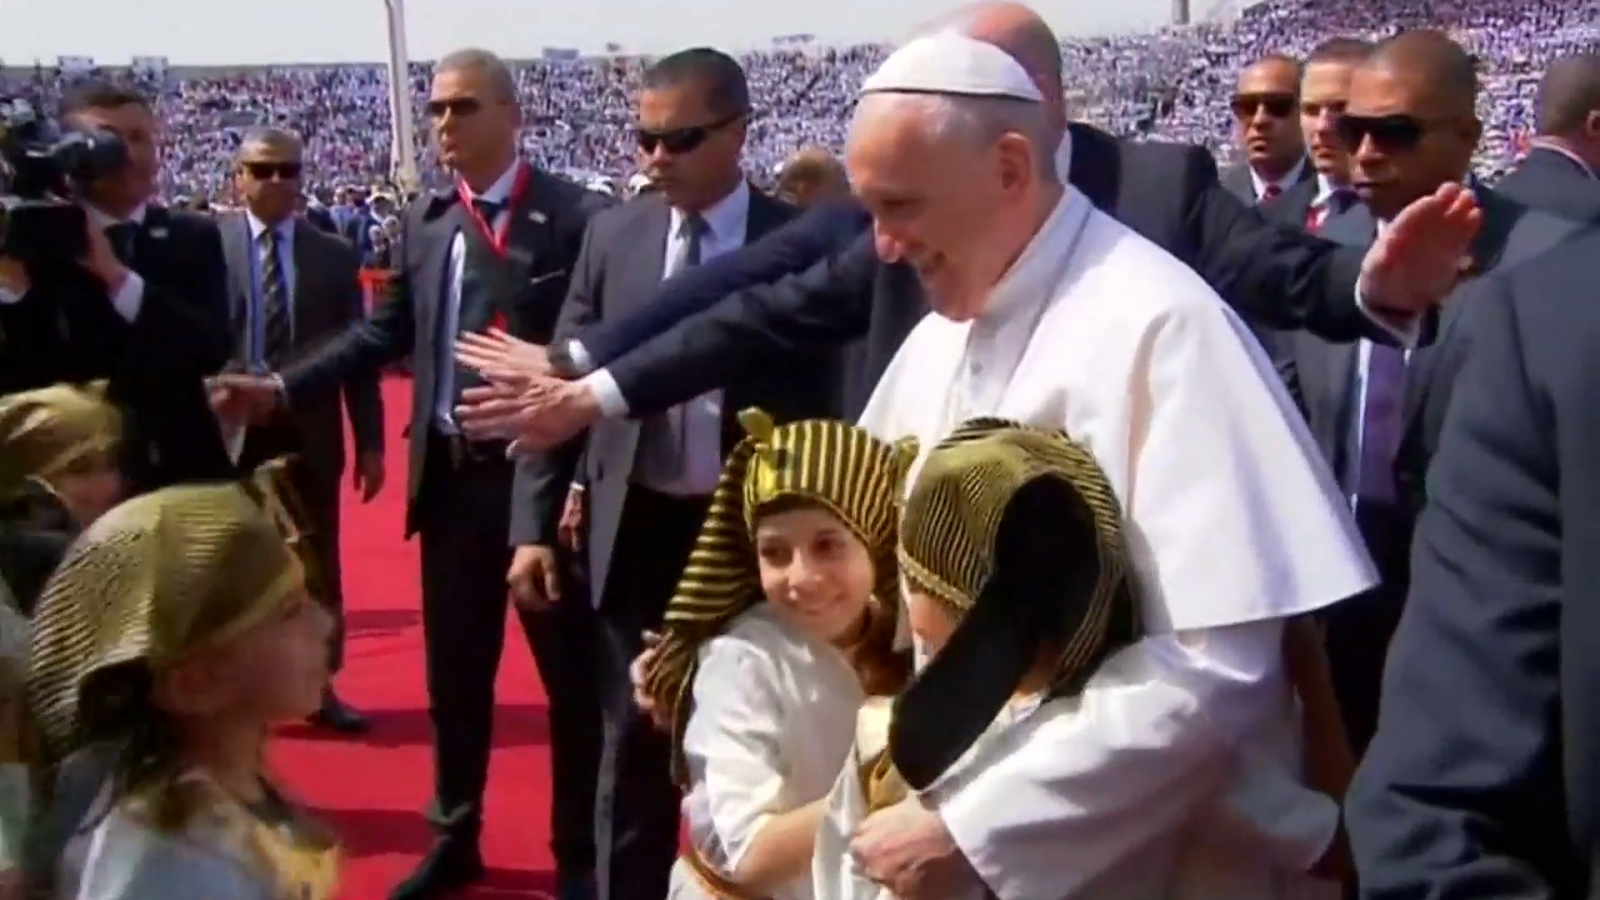 Pope Francis visits Egypt